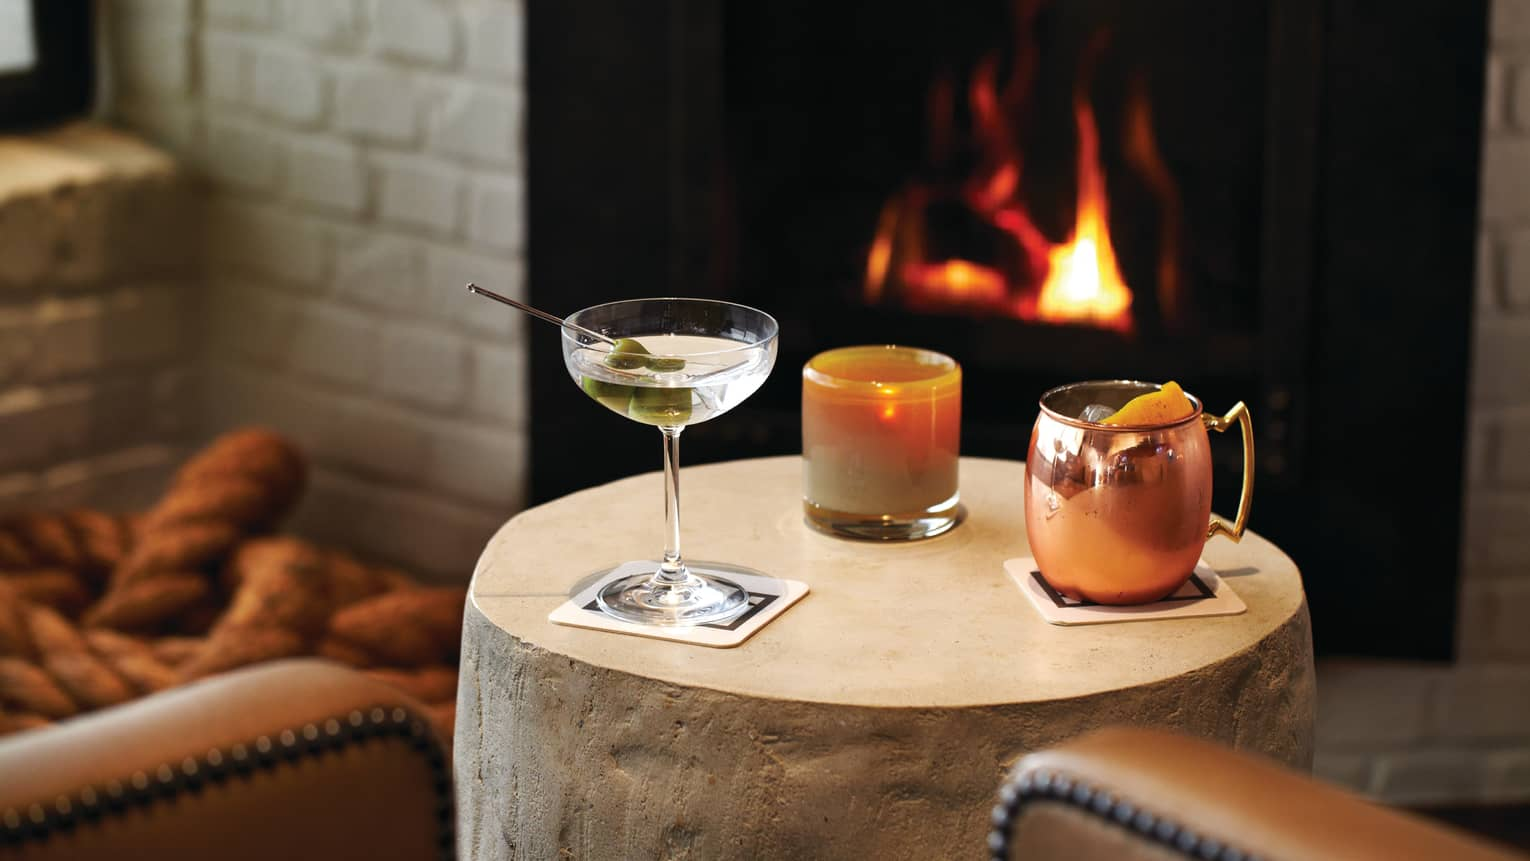 Martini glass, cocktail and copper mug on small round table in front of fireplace